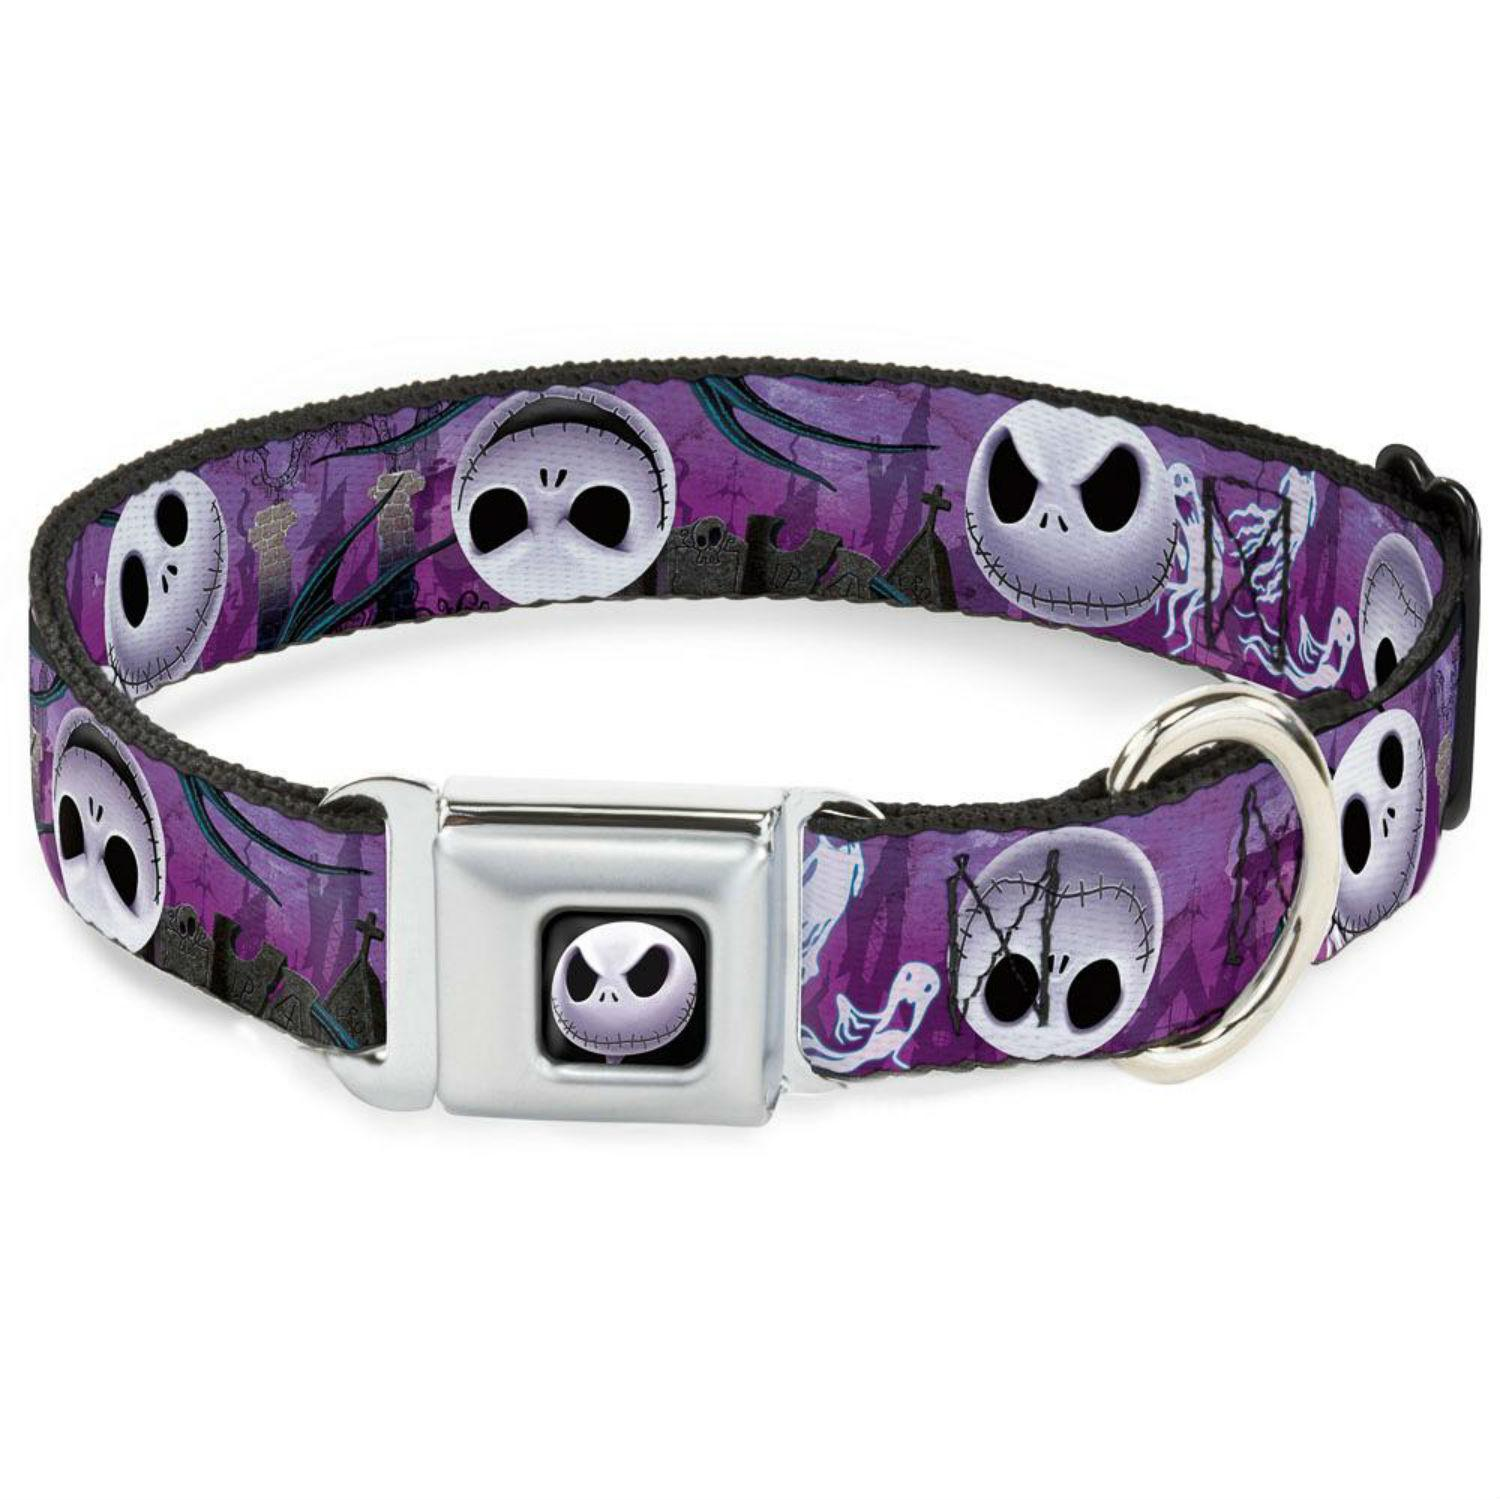 Nightmare Before Christmas Seatbelt Buckle Dog Collar by Buckle-Down - Purple